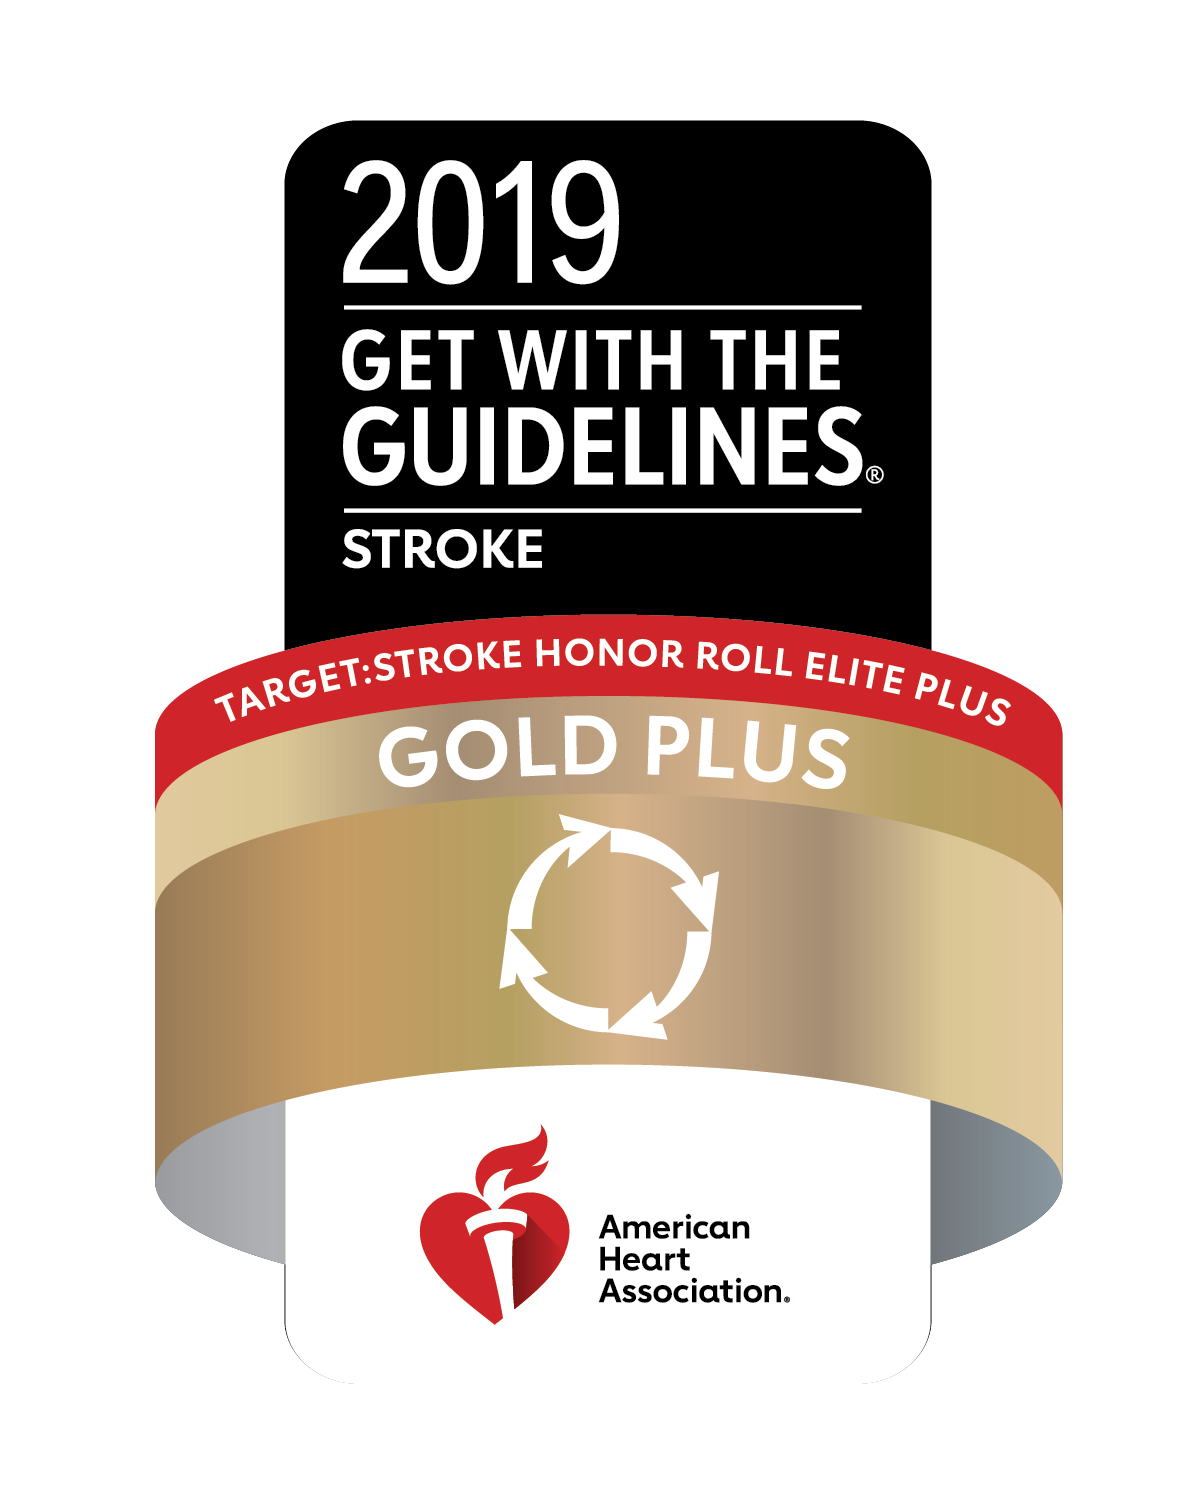 Stroke Honor Roll Elite gold plus 2019 Logo